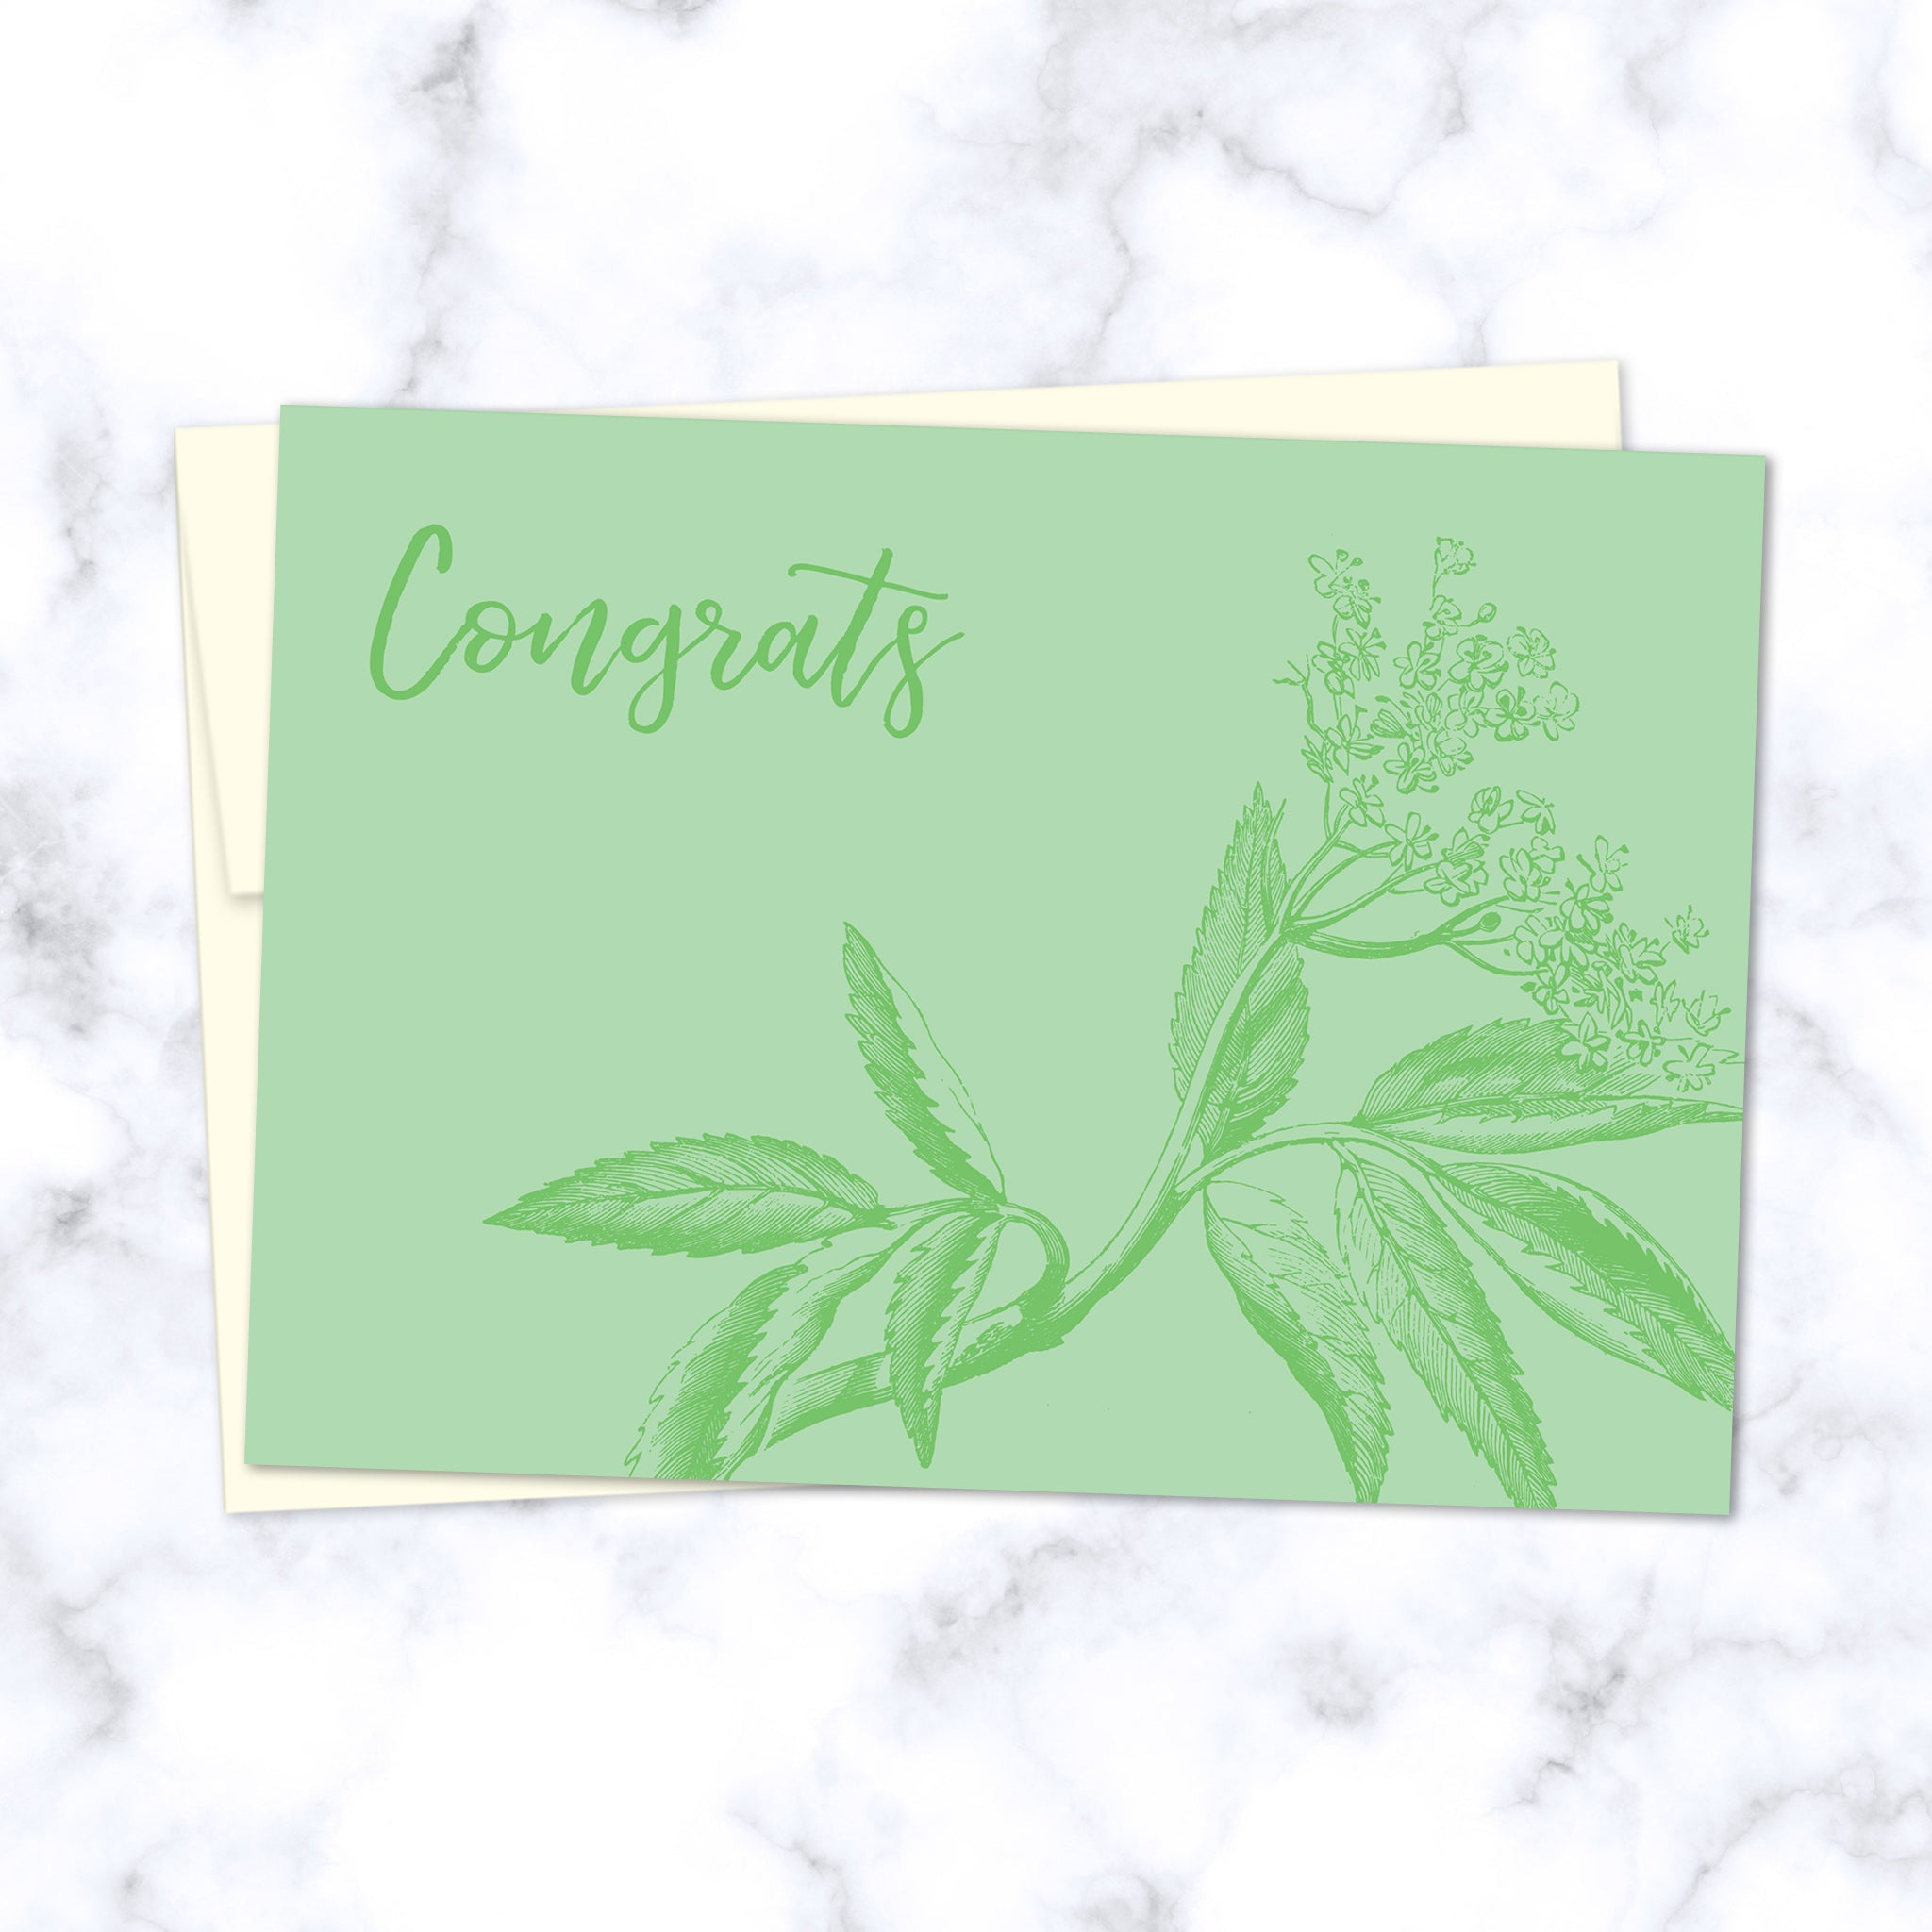 Congrats Green Floral Illustrated Greeting Card - Front Image